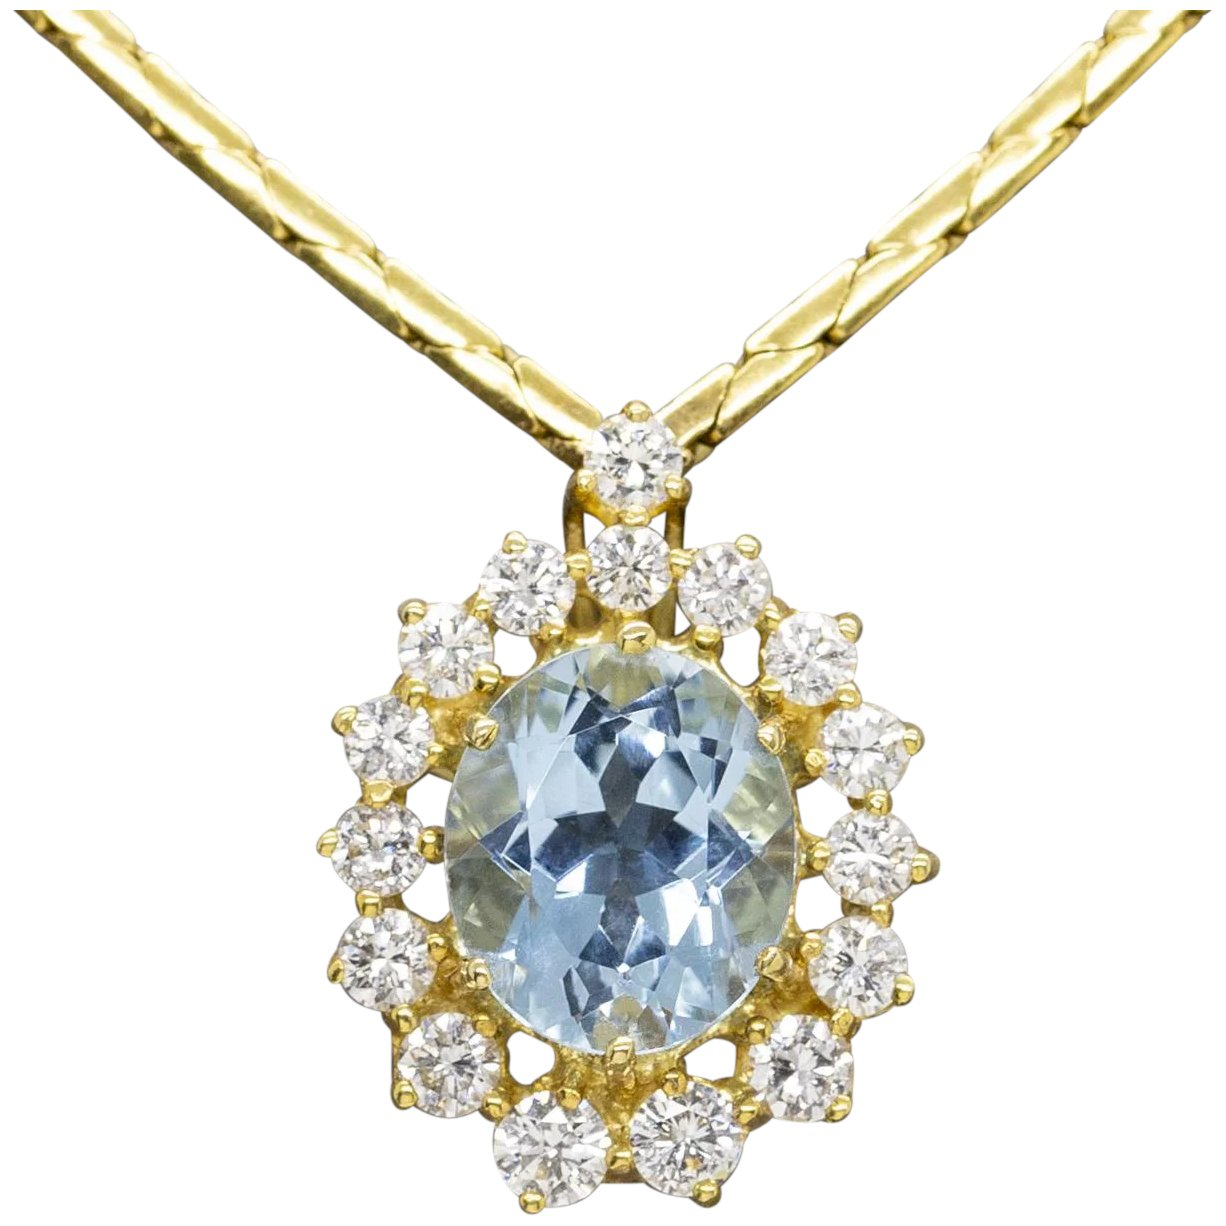 Classic Oval Aquamarine And Diamond Pendant Necklace 18k Yellow Gold The Jeweled Crescent Ruby Lane